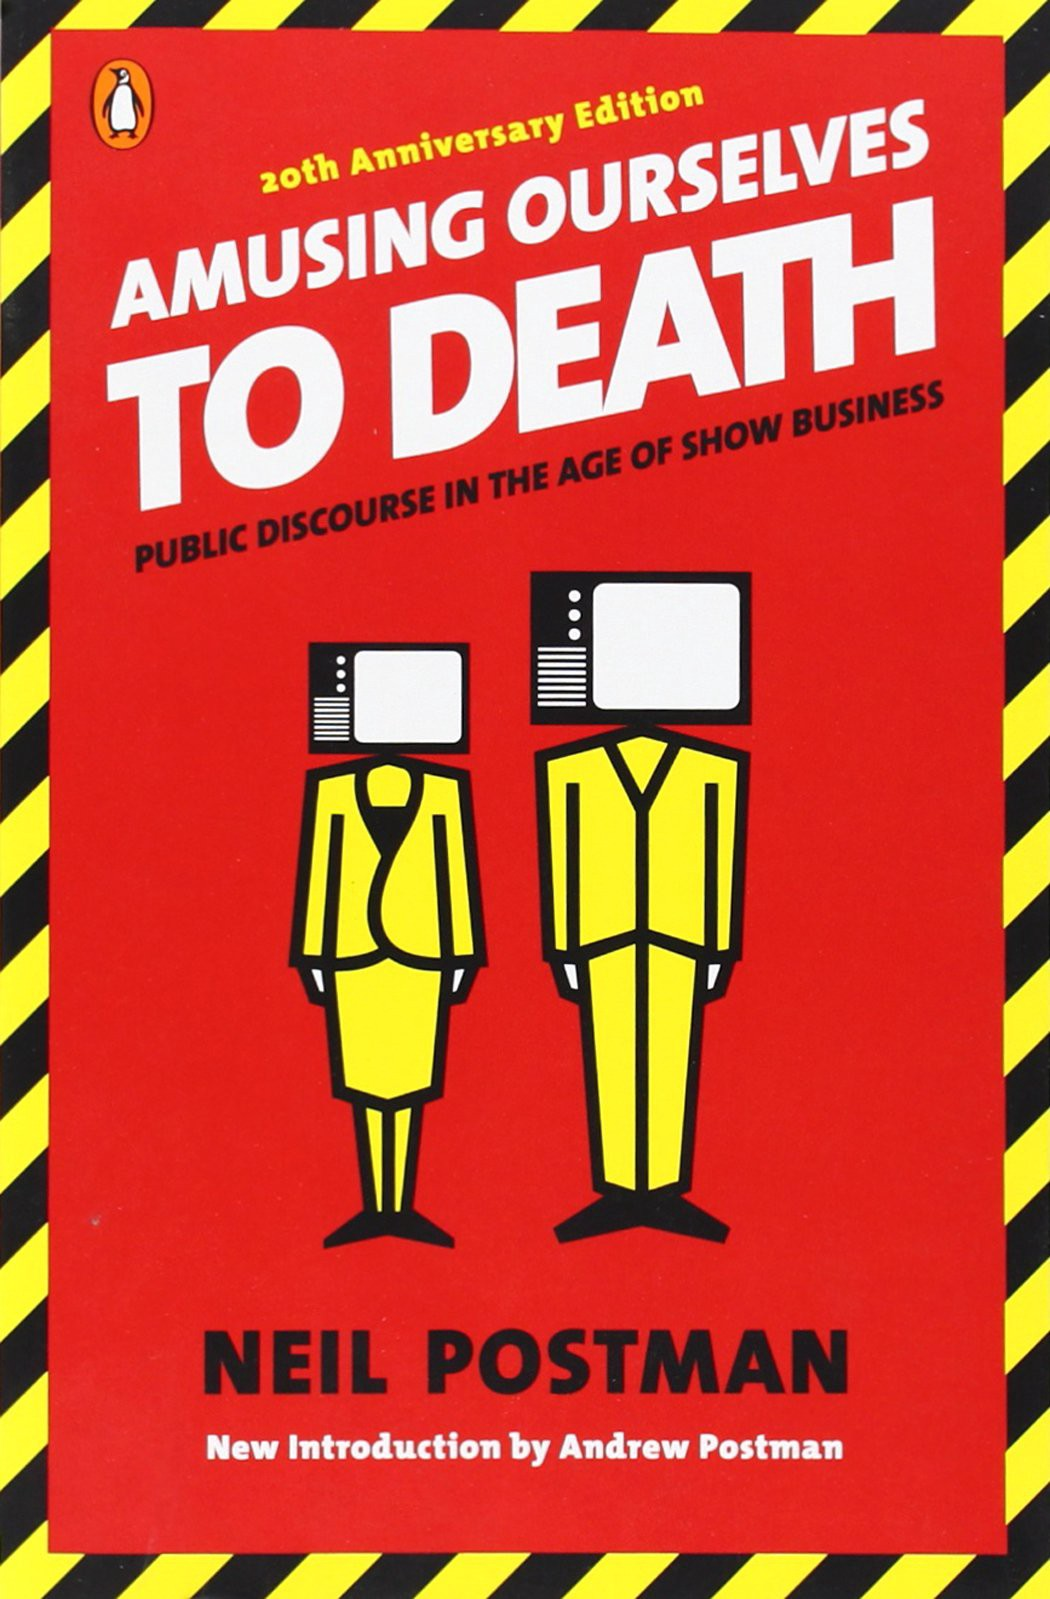 postman amusing ourselves to death thesis